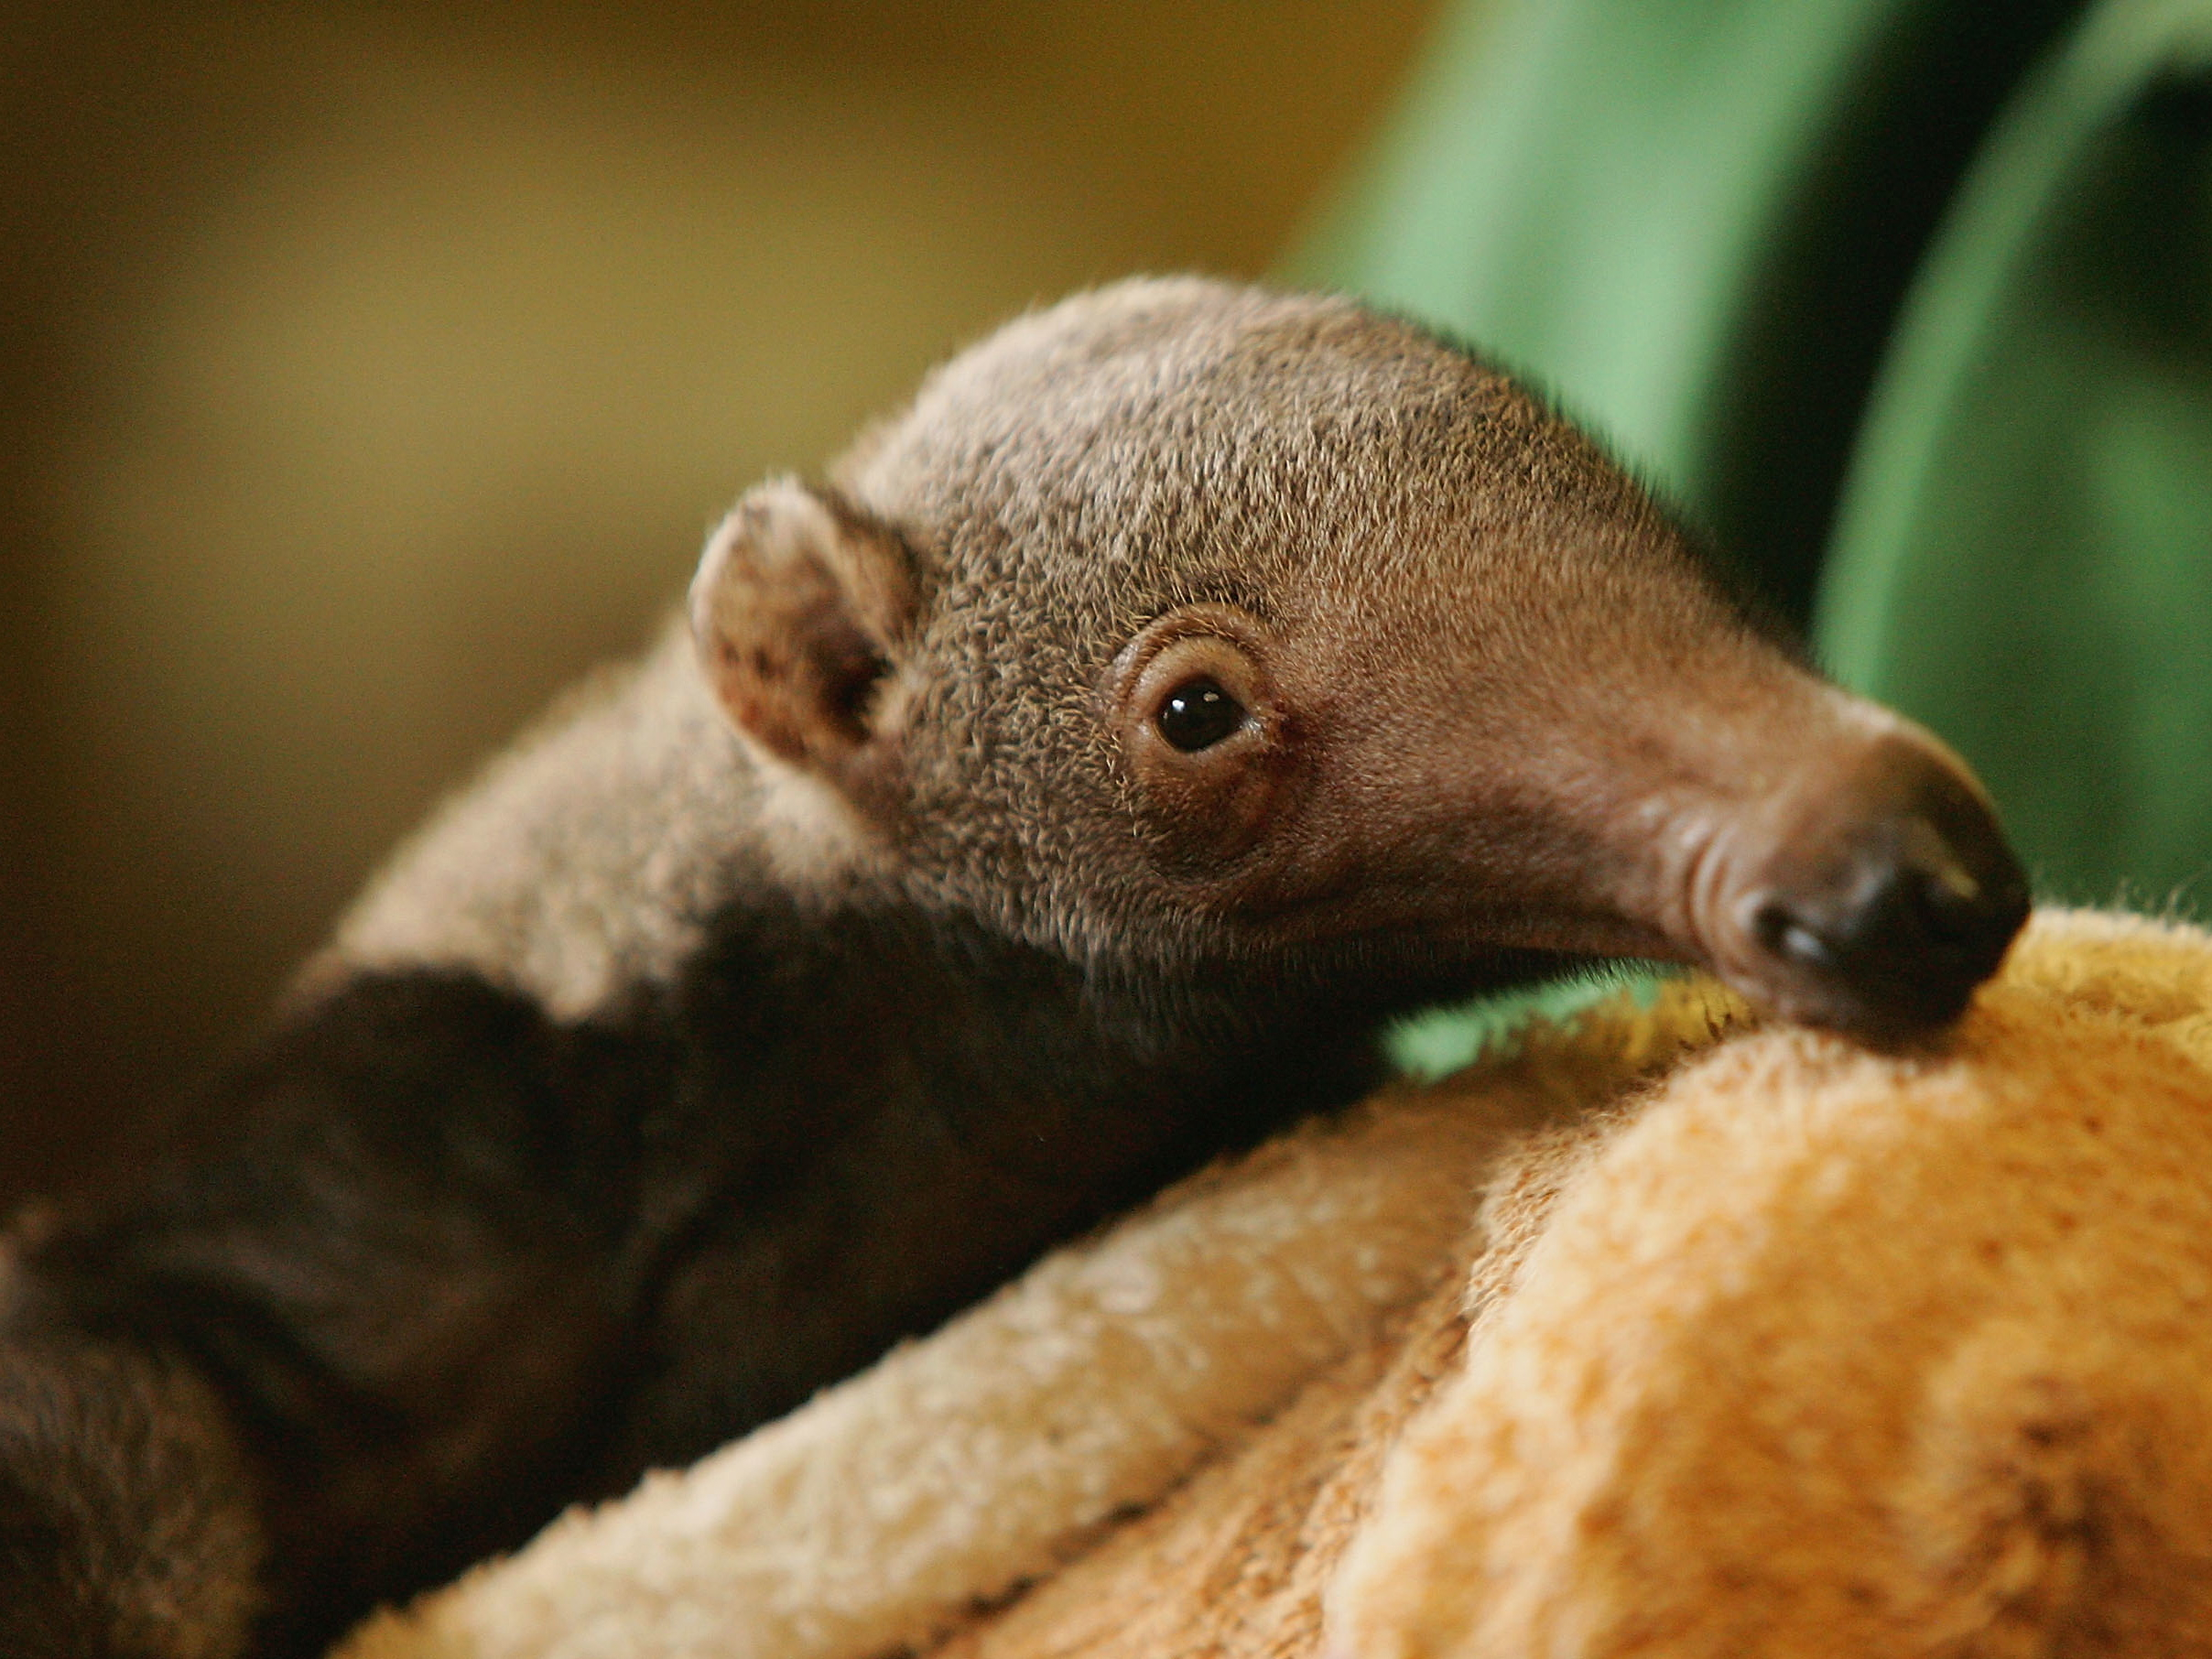 A baby giant anteater at the London Zoo in 2005.